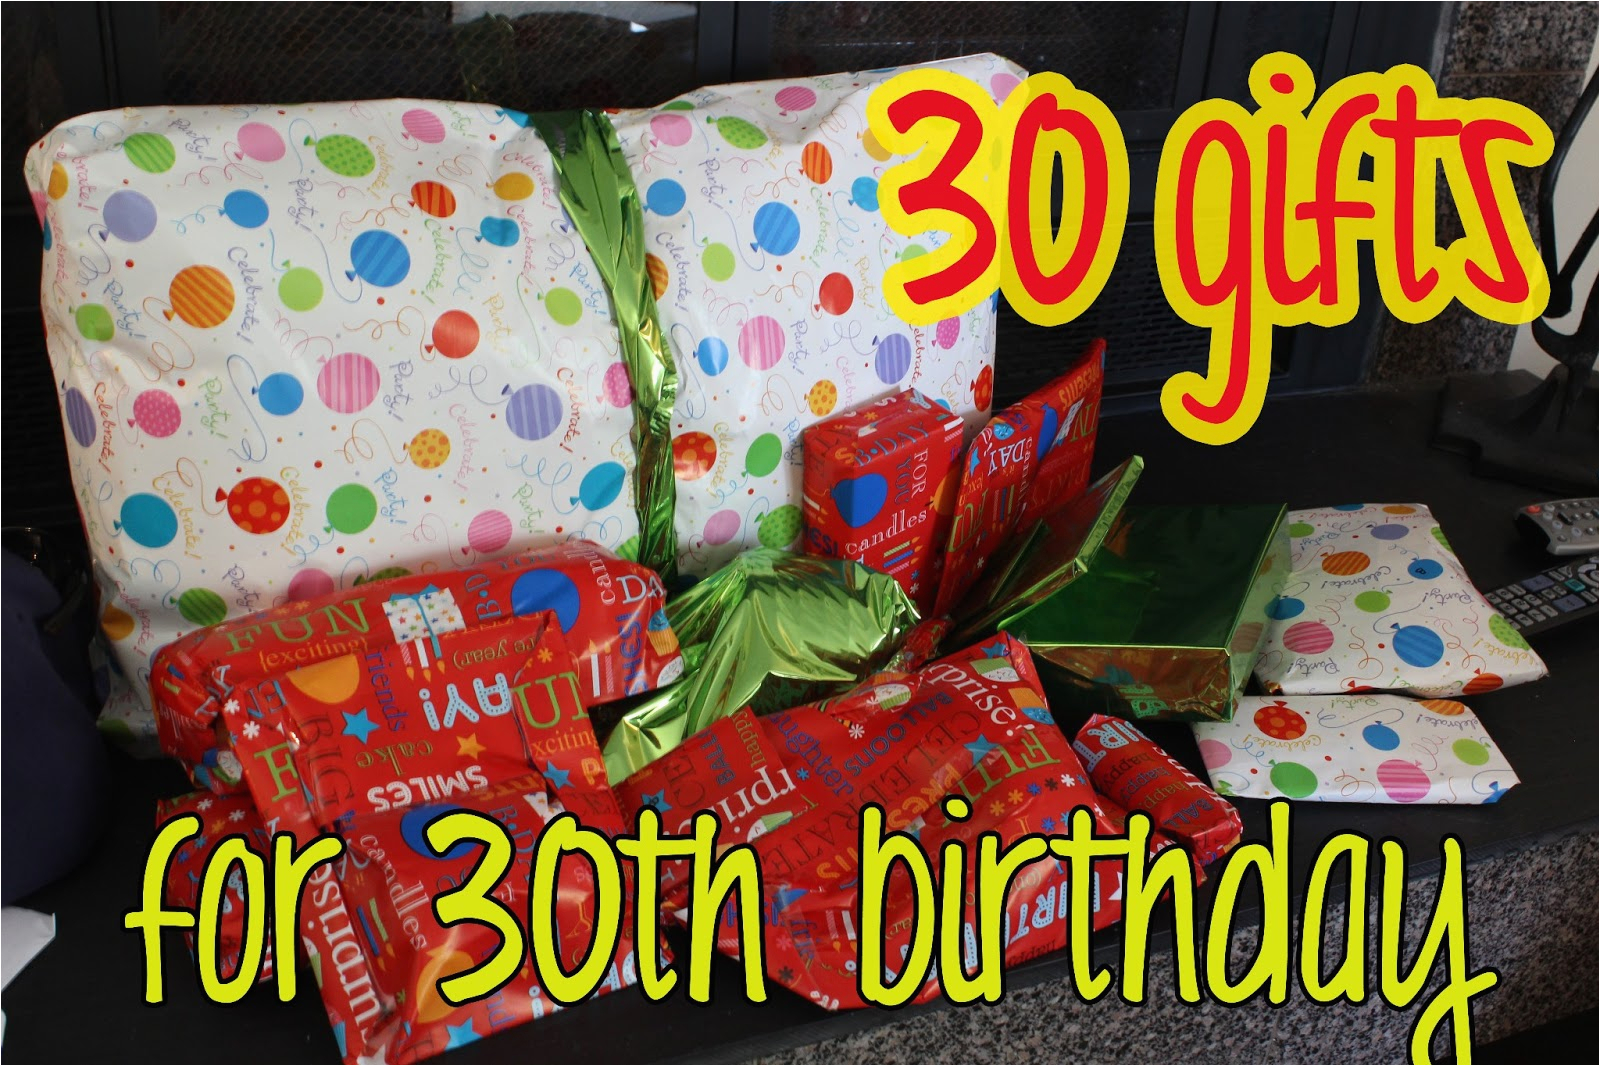 30th Birthday Gift Baskets For Her Love Elizabethany Idea 30 Gifts